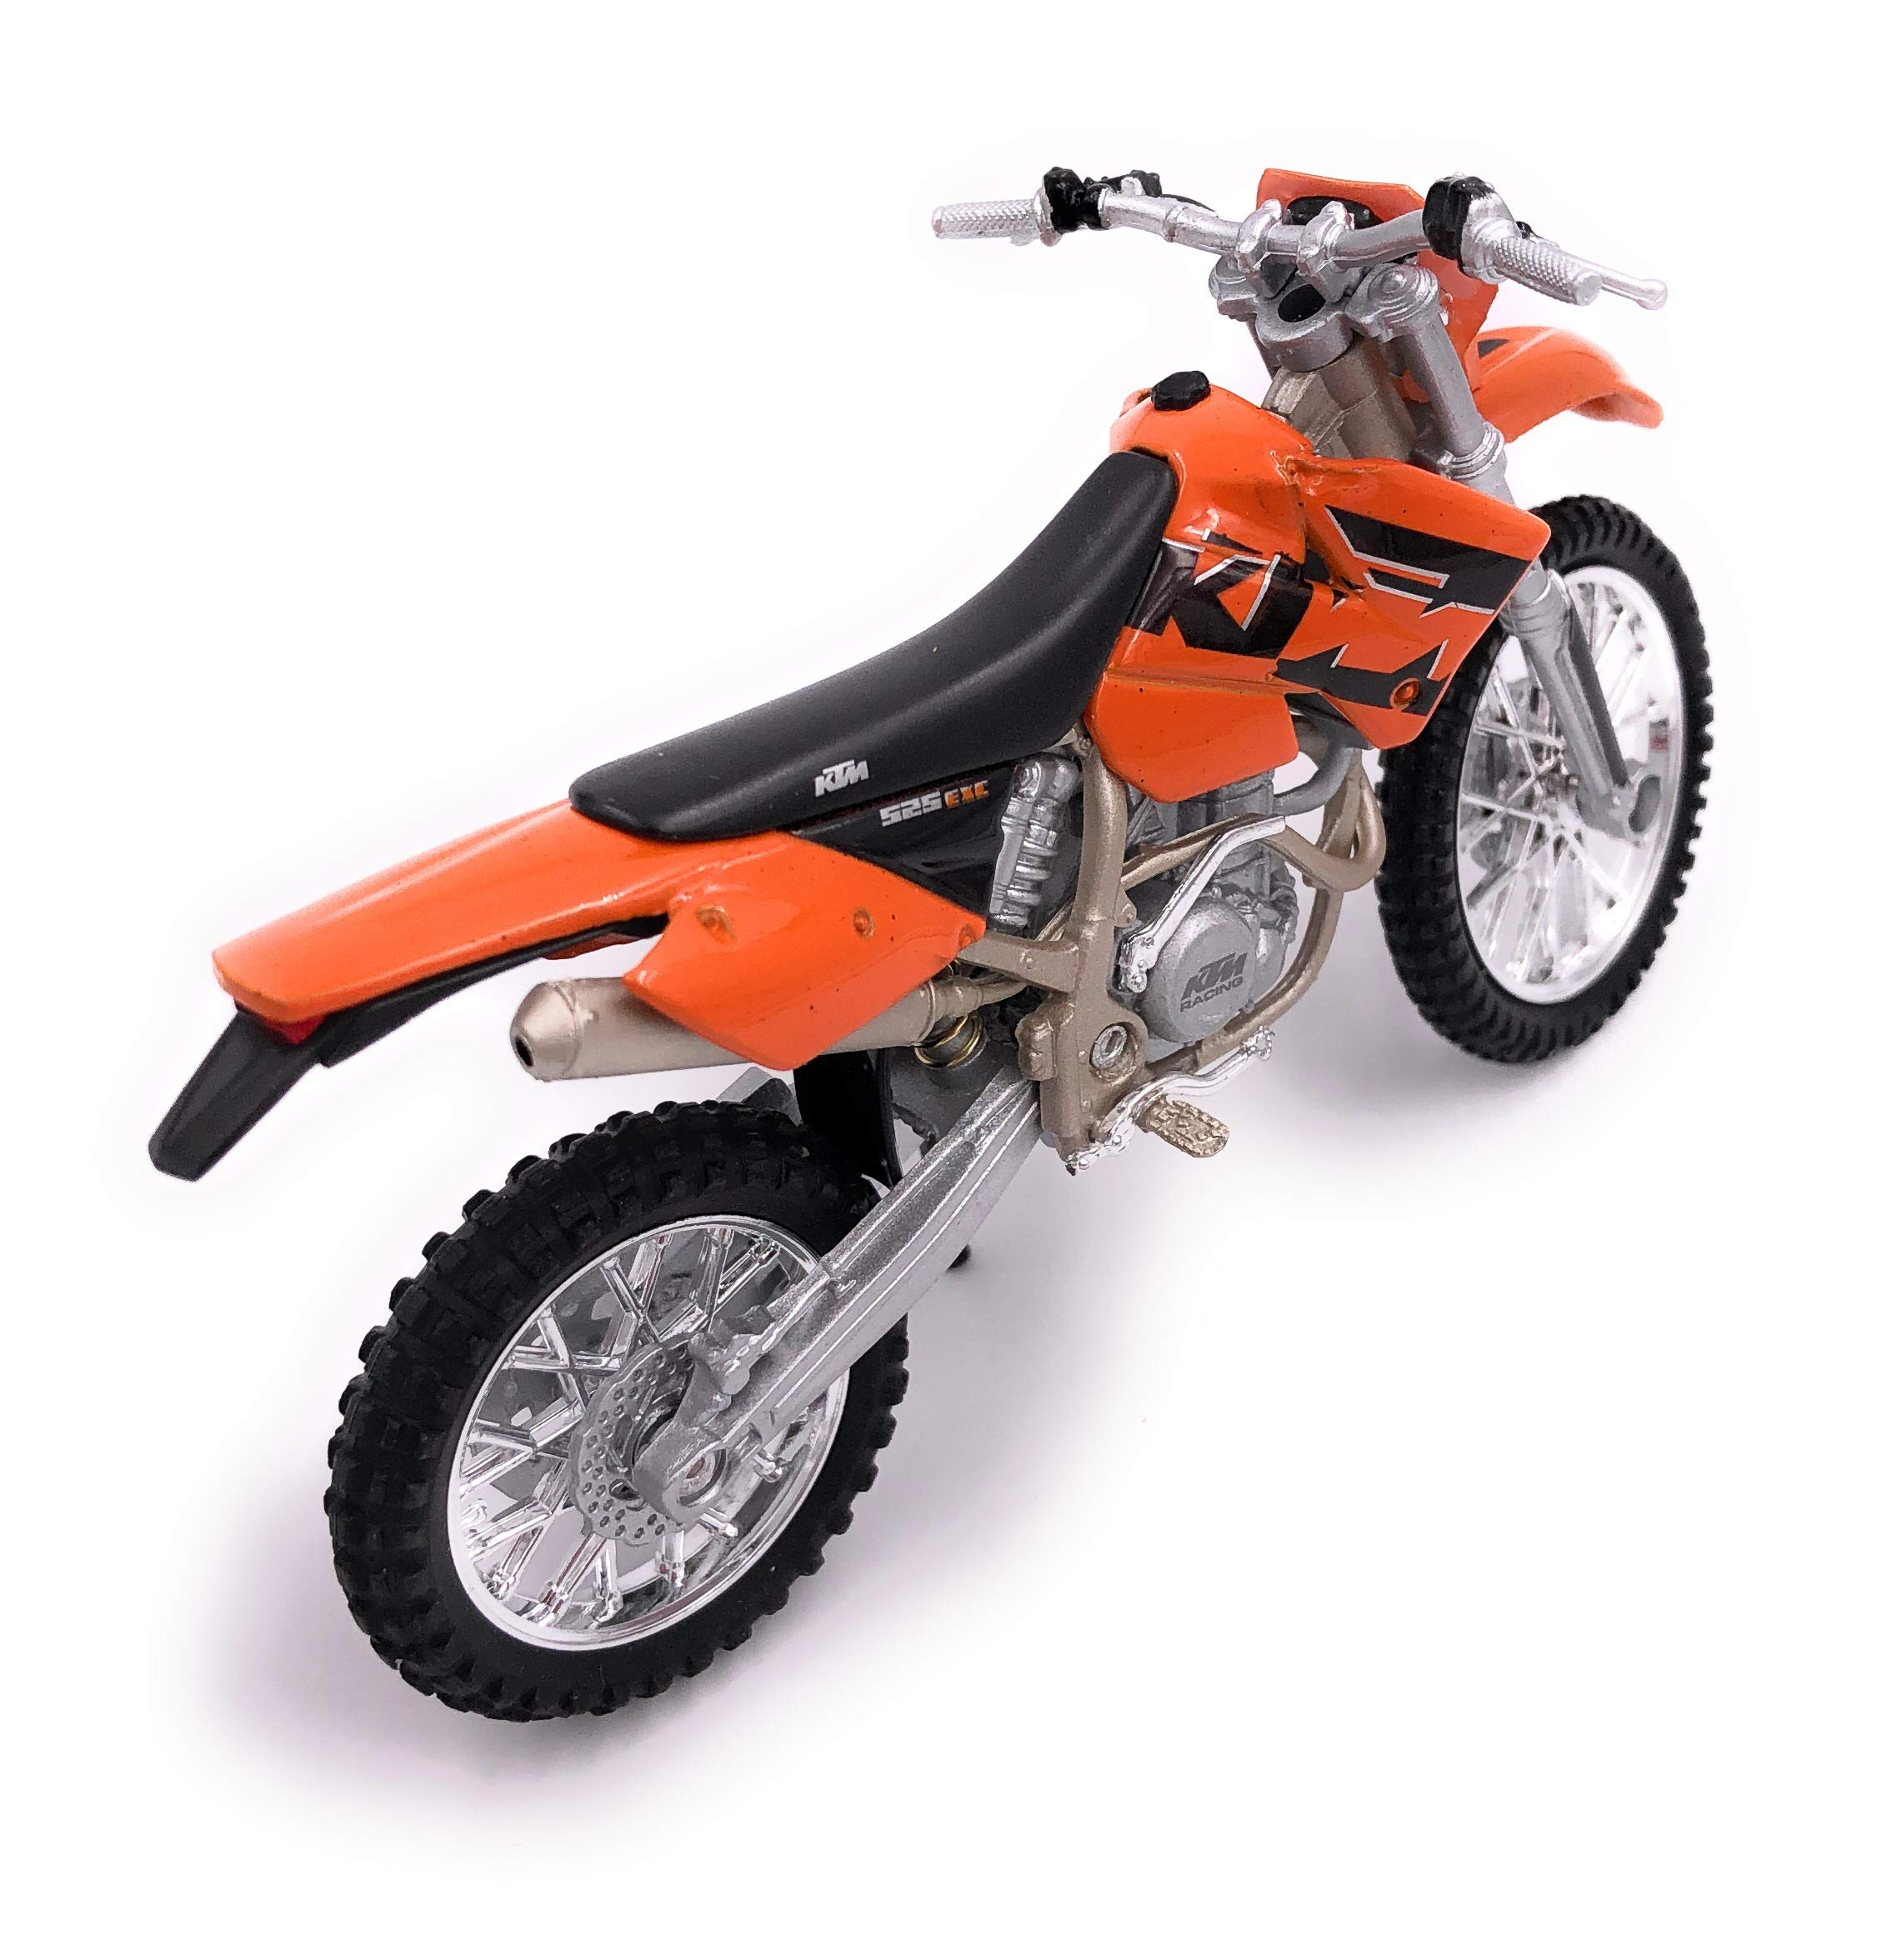 H-Customs Motocicleta Bicicleta EXC 525 Orange Cross Enduro Modelo ...